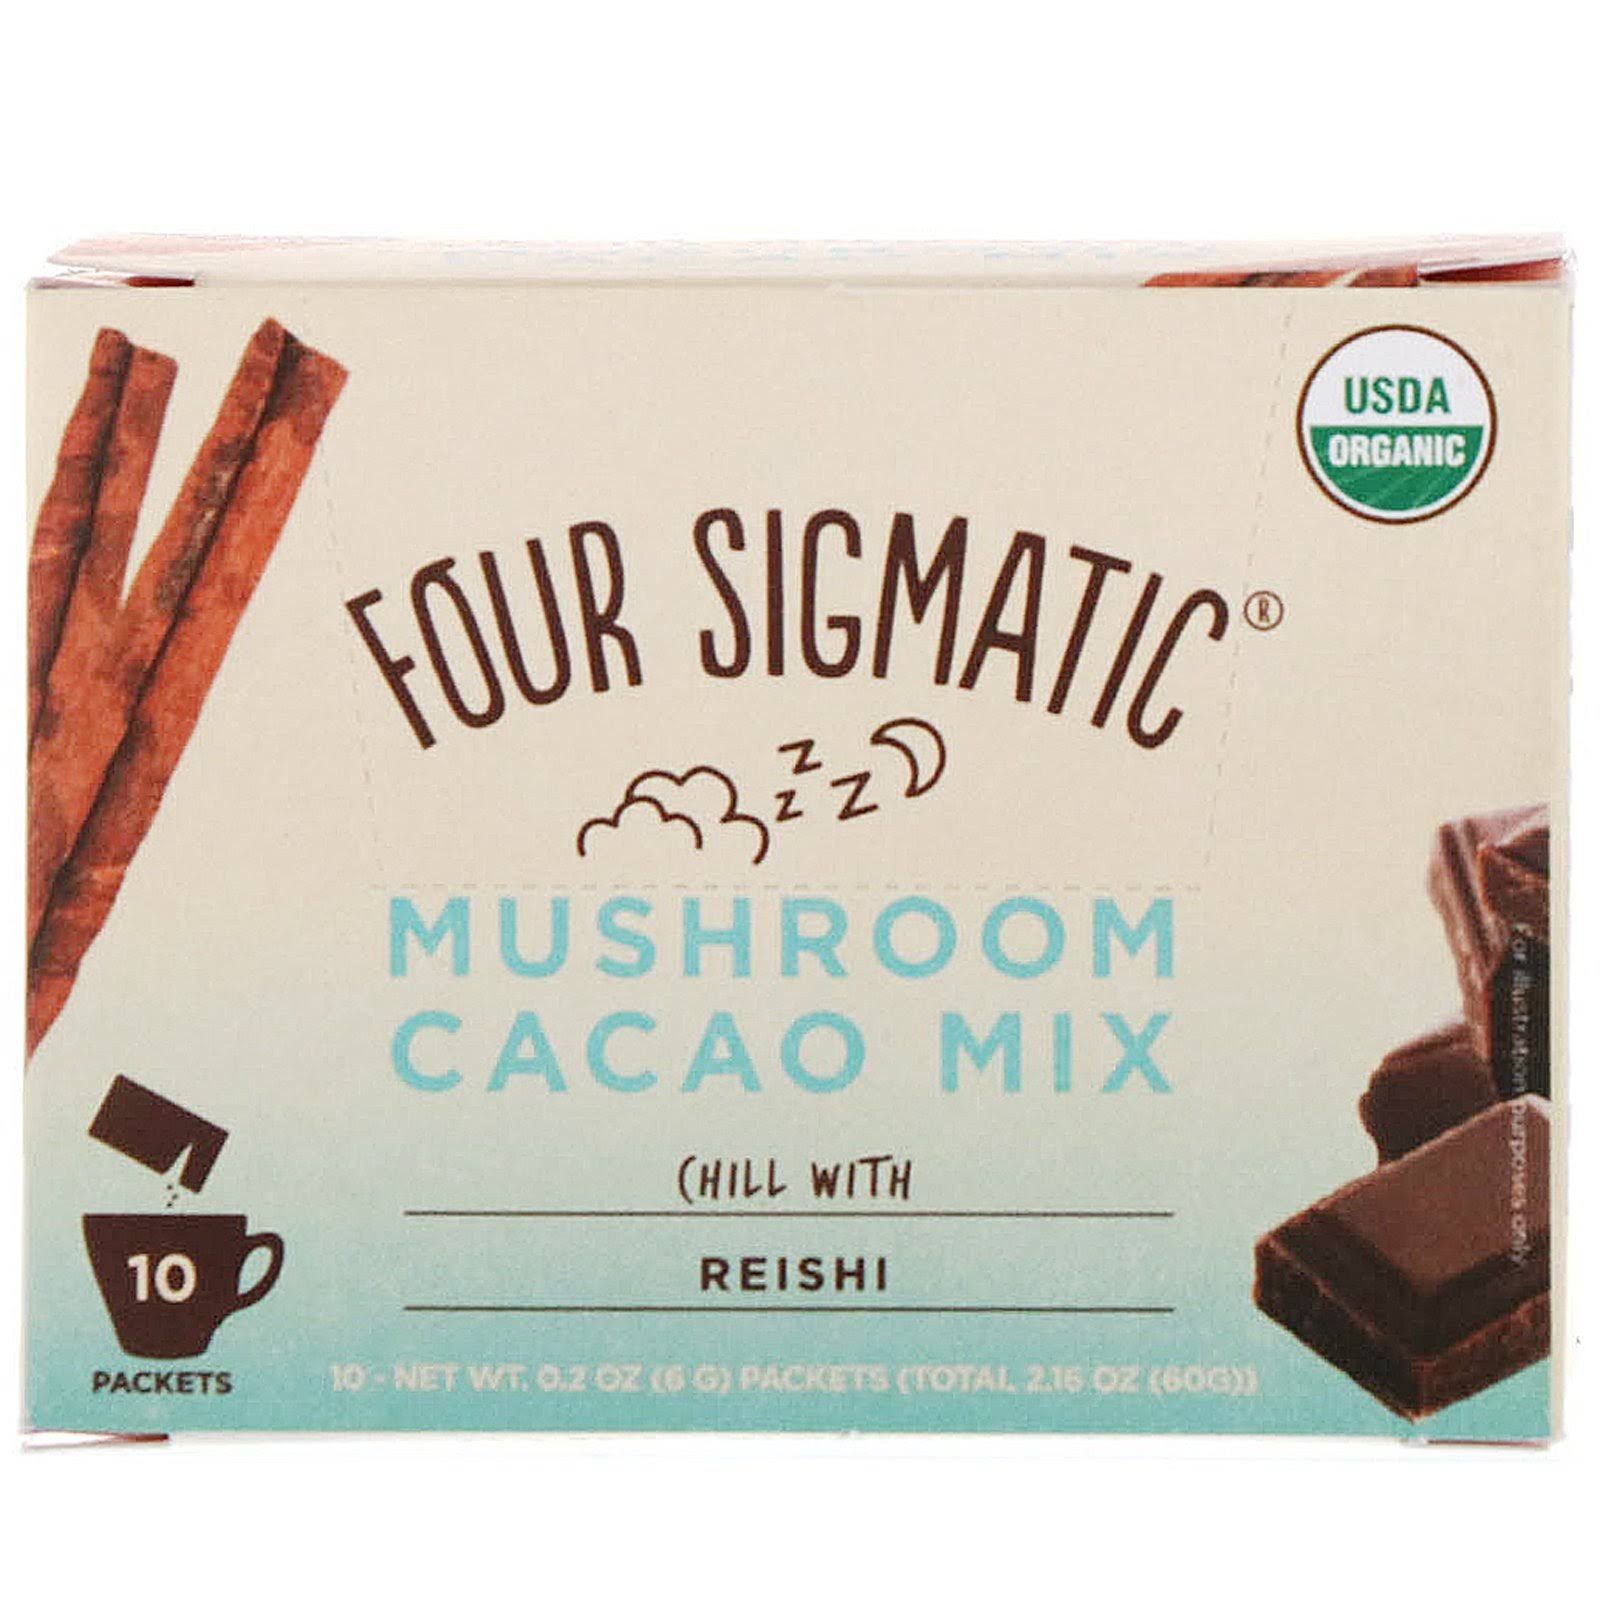 Four Sigmatic Mushroom Hot Cacao Mix - 10 Packets